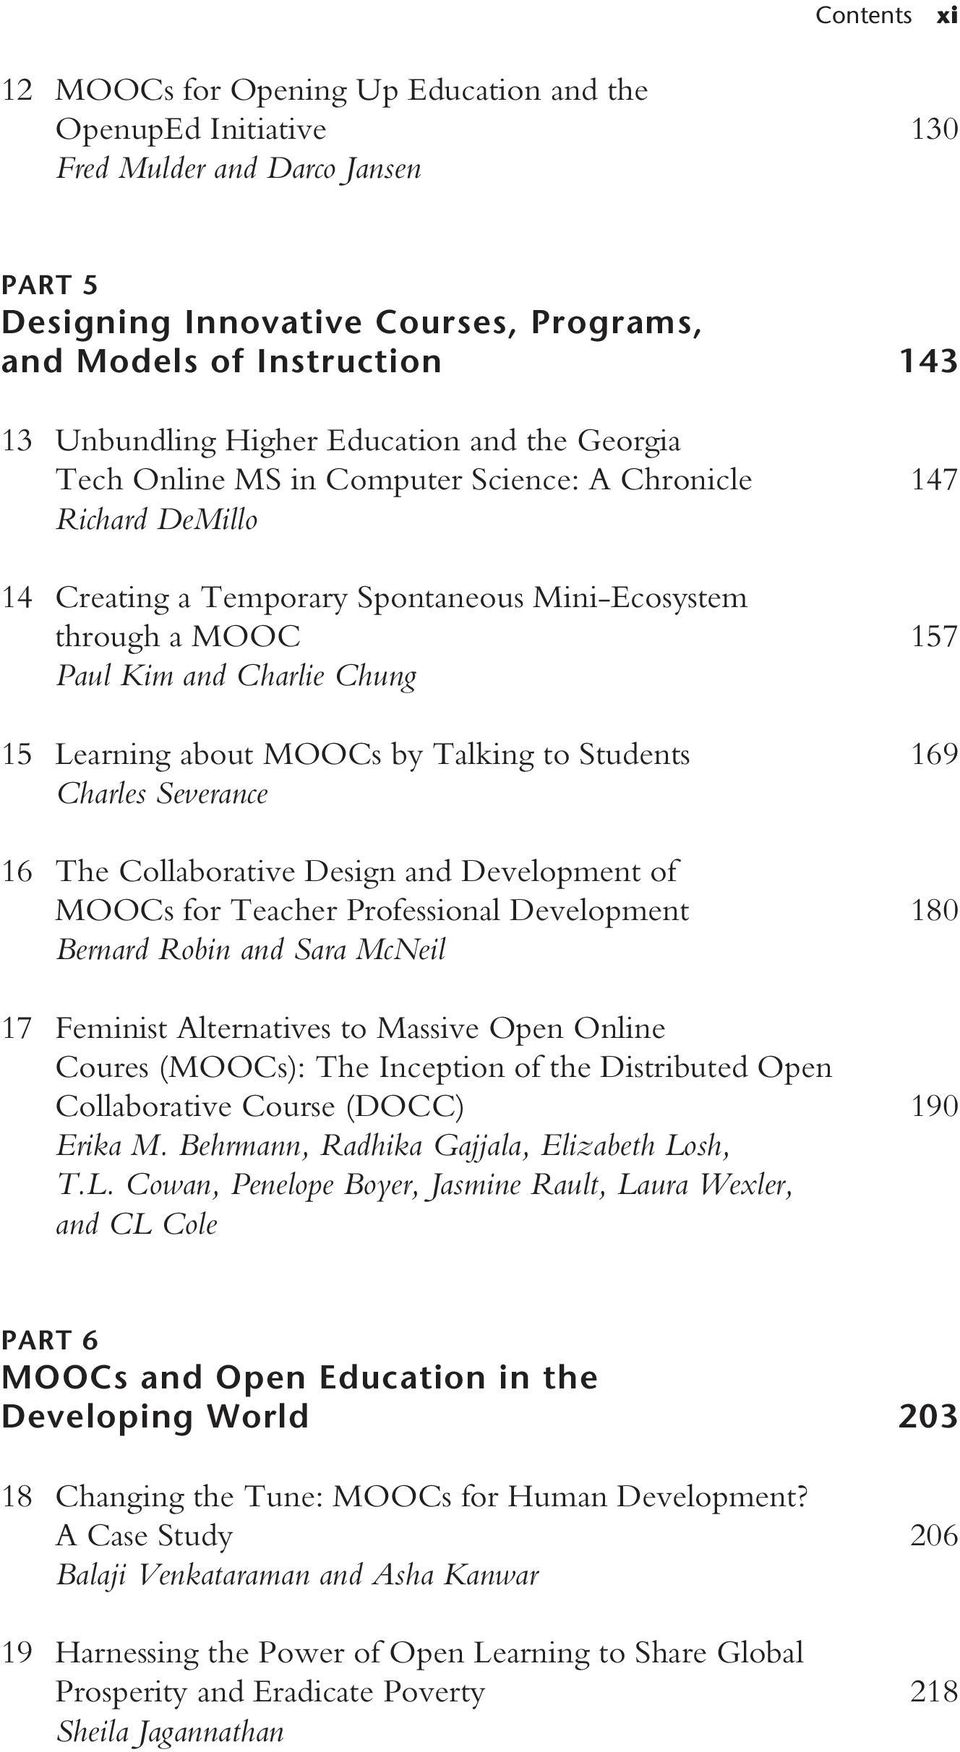 15 Learning about MOOCs by Talking to Students 169 Charles Severance 16 The Collaborative Design and Development of MOOCs for Teacher Professional Development 180 Bernard Robin and Sara McNeil 17